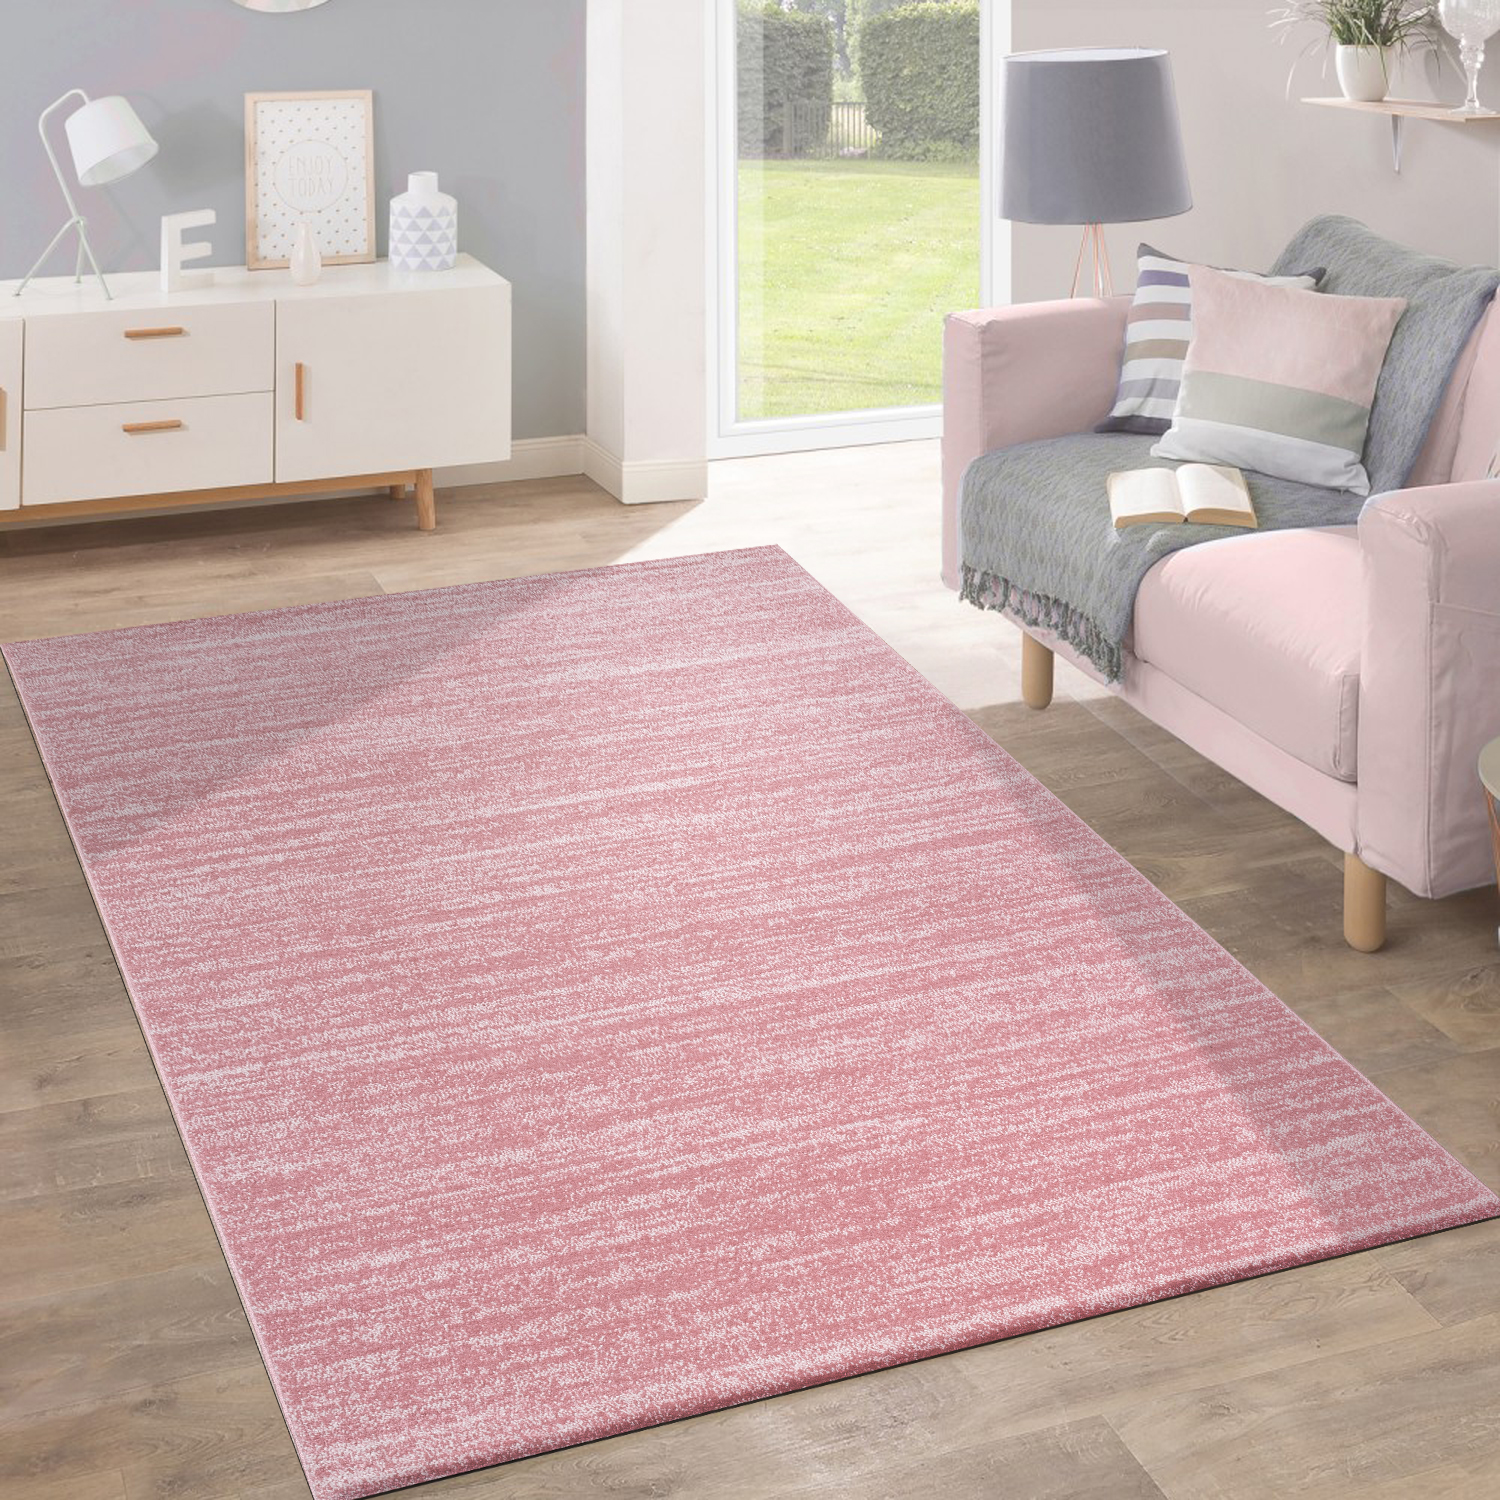 Rug Short-Pile Modern Trendy Pastel Colours Design Mottled Inspiration Pink